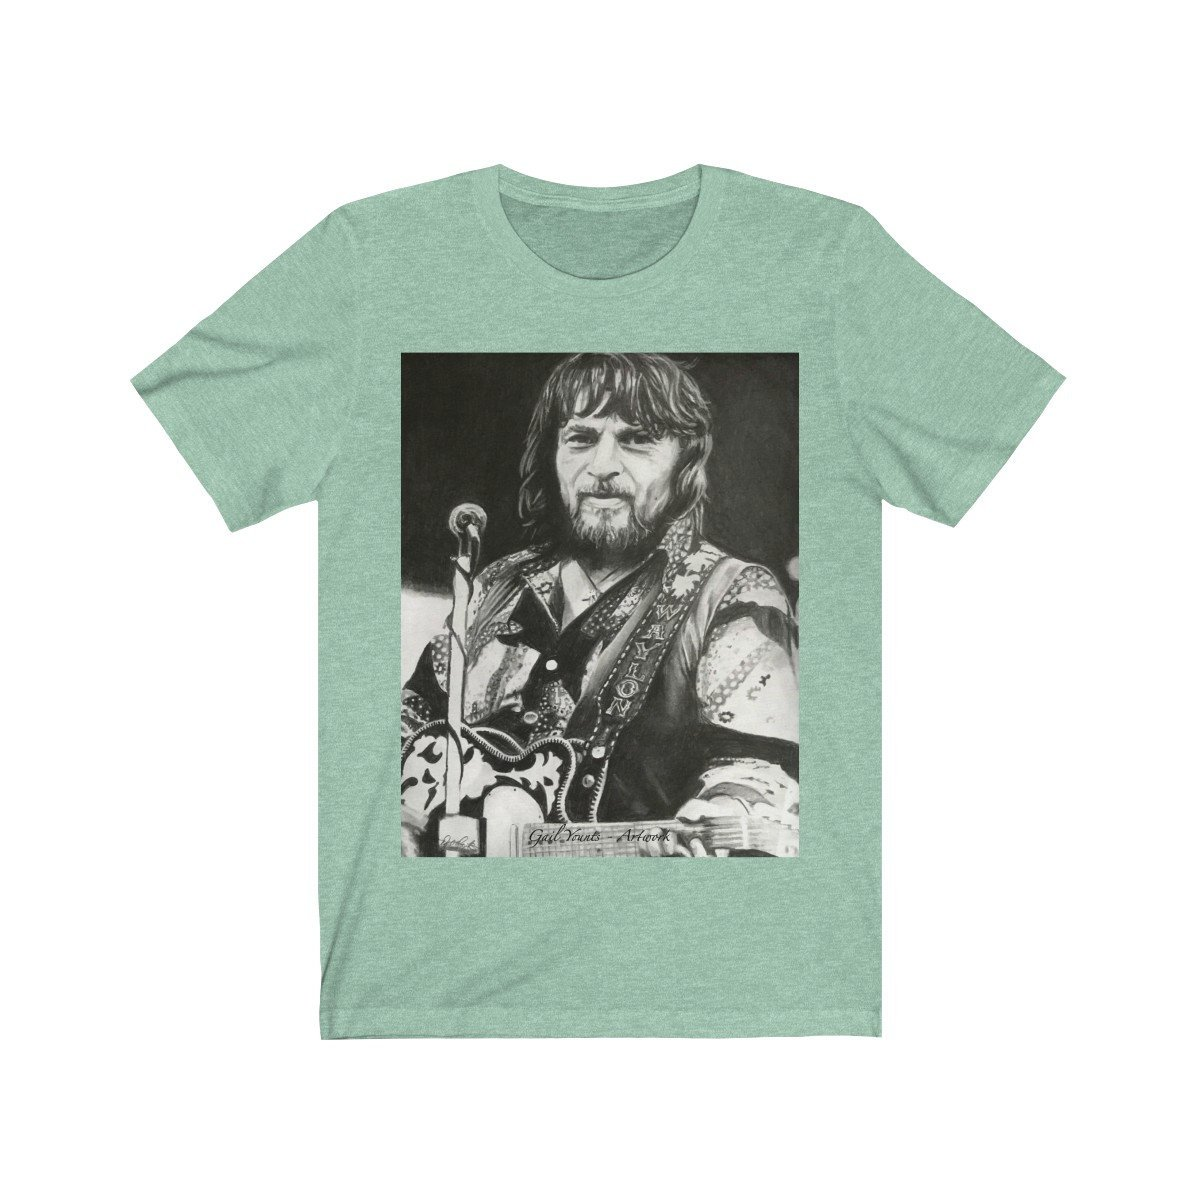 Excited to share the latest addition to my #etsy shop: Waylon Jennings Drawing Unisex Jersey Short Sleeve Tee https://etsy.me/2ka290b #clothing #shirt #gailyountsartwork  Multiple colors and size options!